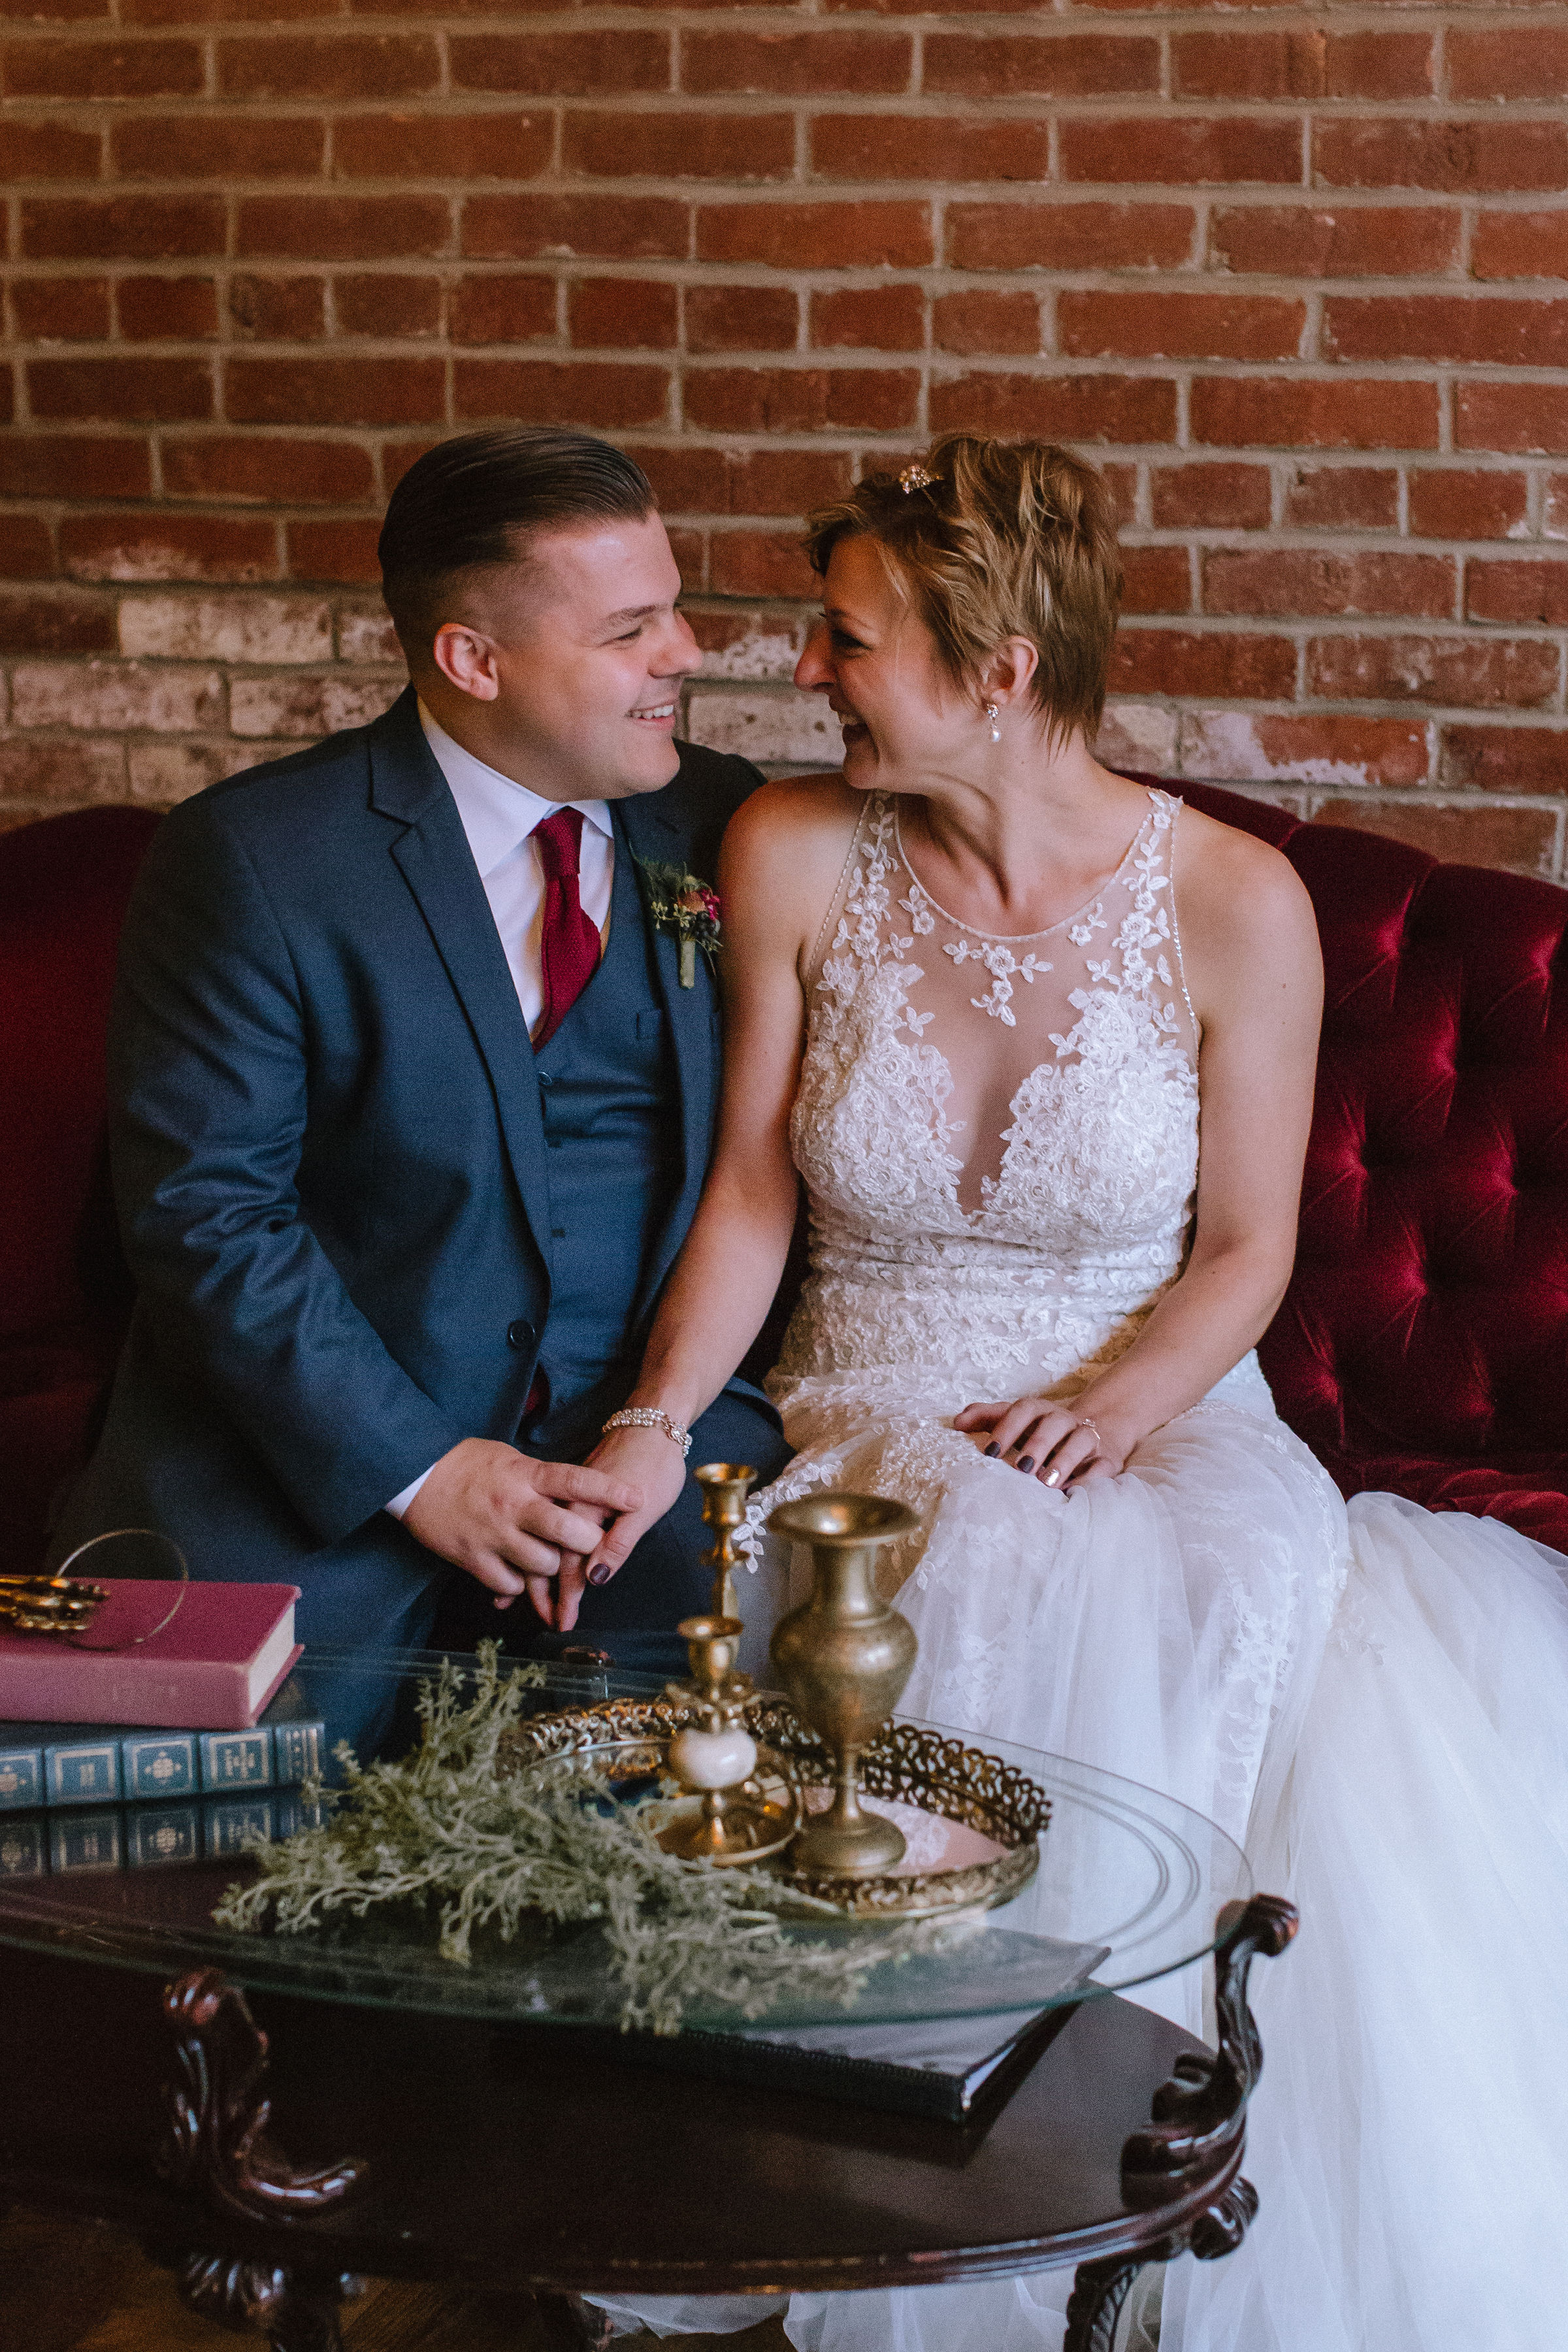 Bride and groom pose with vintage wedding reception decor at Pittsburgh wedding at Studio Slate planned by Exhale Events. Find more wedding inspiration at exhale-events.com!